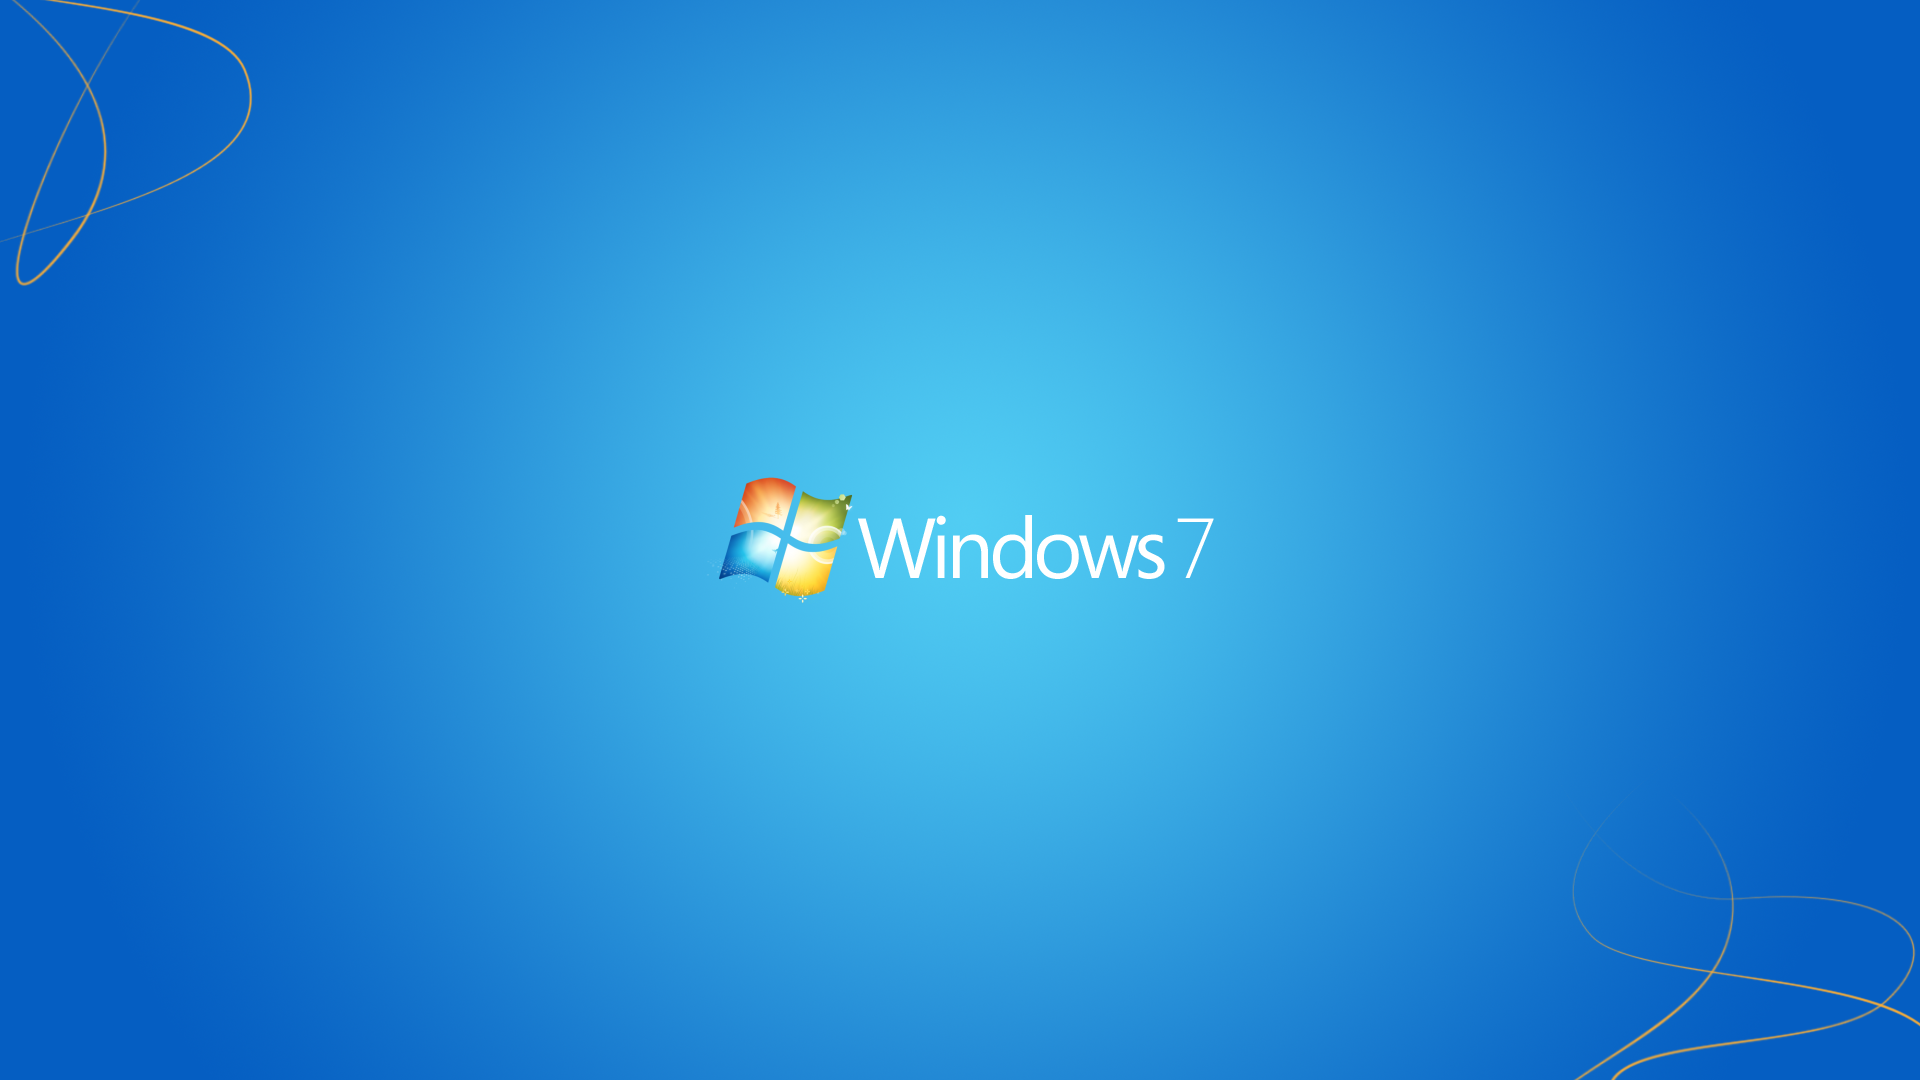 Windows 7 Wallpaper Energy Bliss By Scimiazzurro